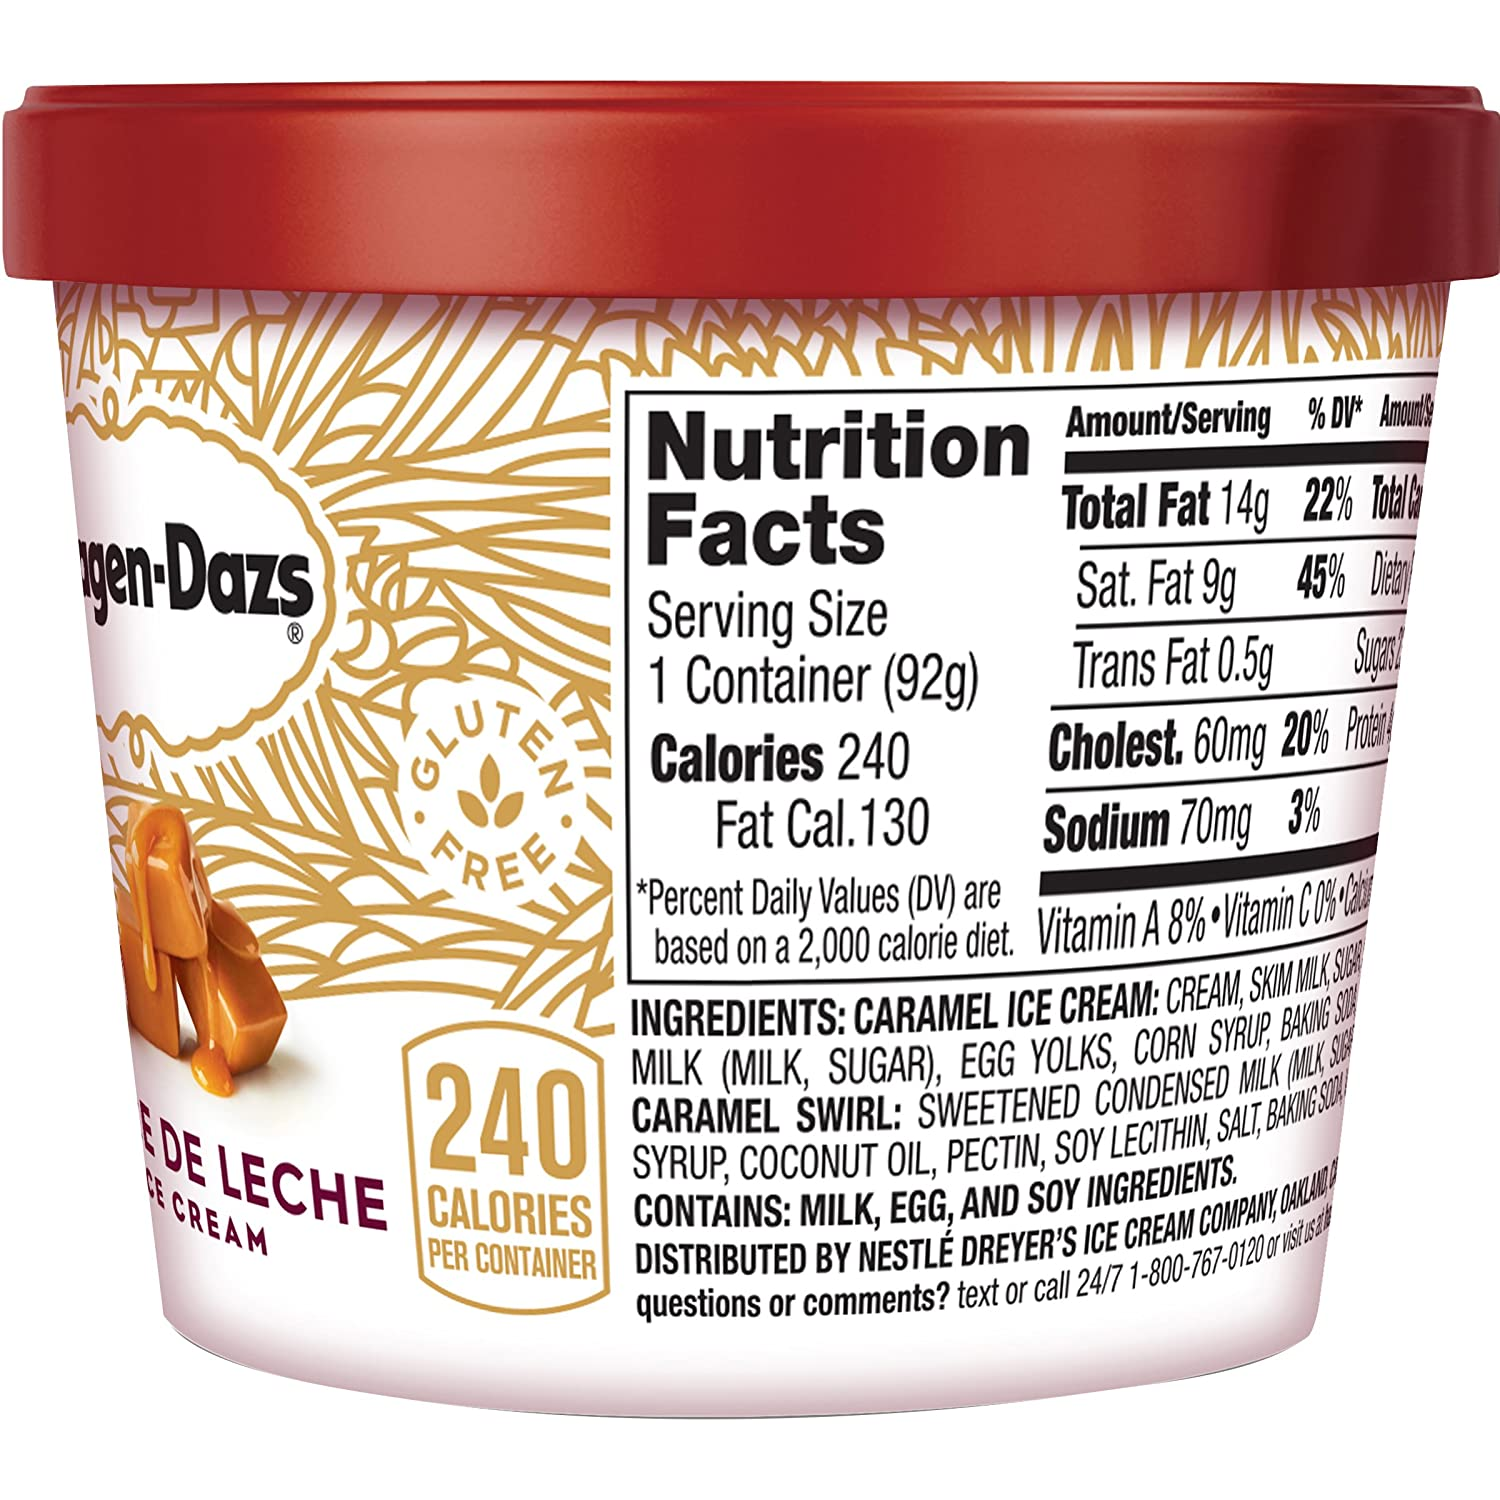 Haagen-Dazs Cup Dulce De Leche Ice Cream 3.6 oz (Frozen): Amazon.com: Grocery & Gourmet Food